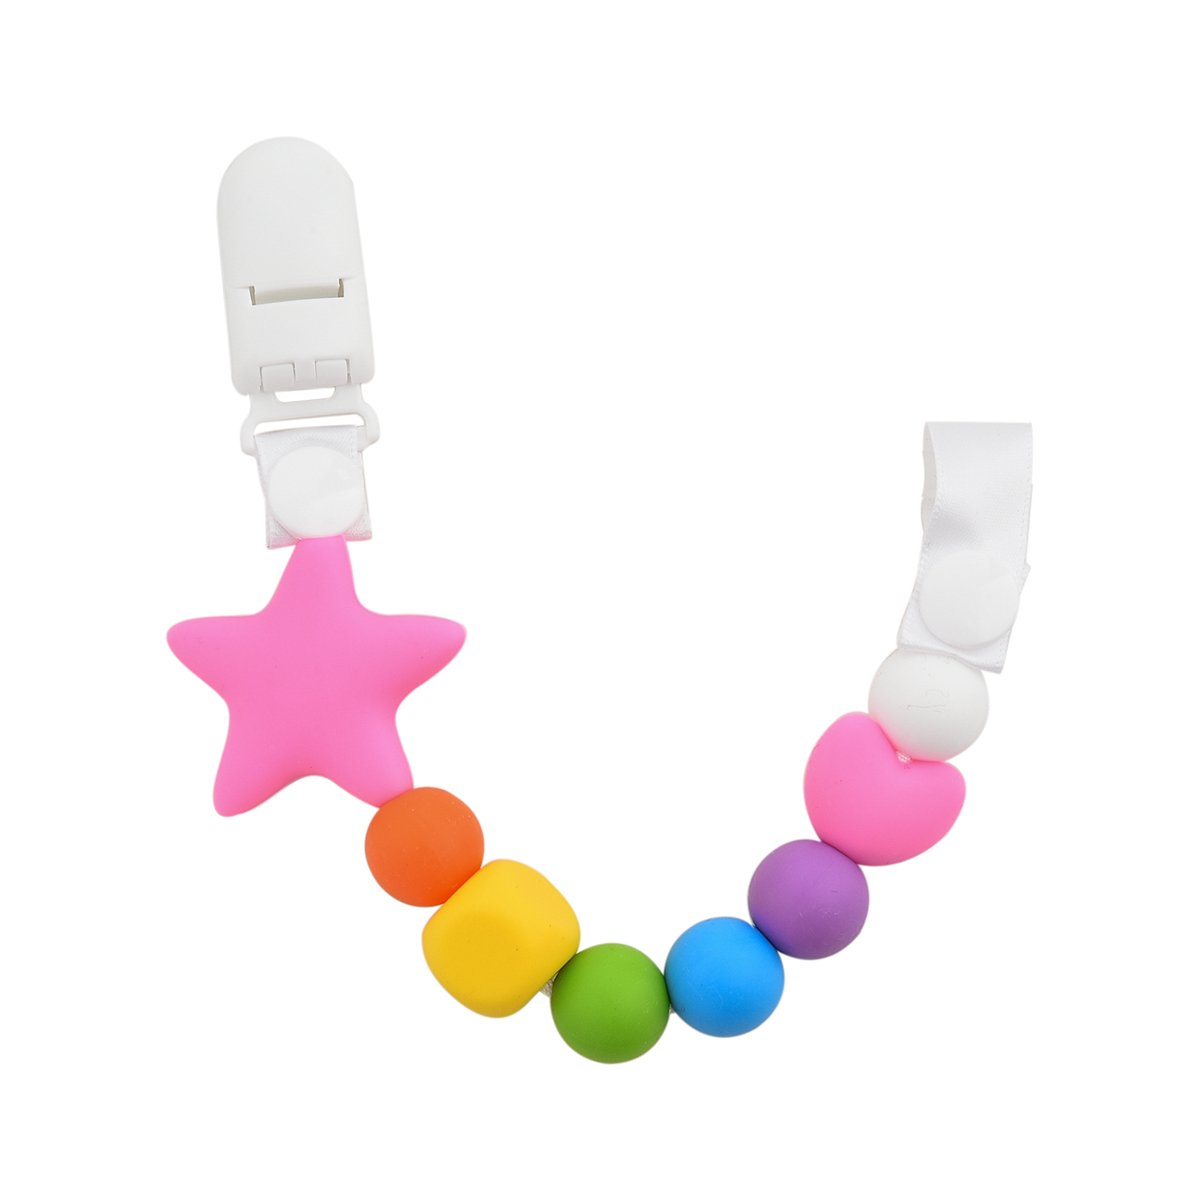 Teether Pacifier Colorful Silicone Soothie Image 2